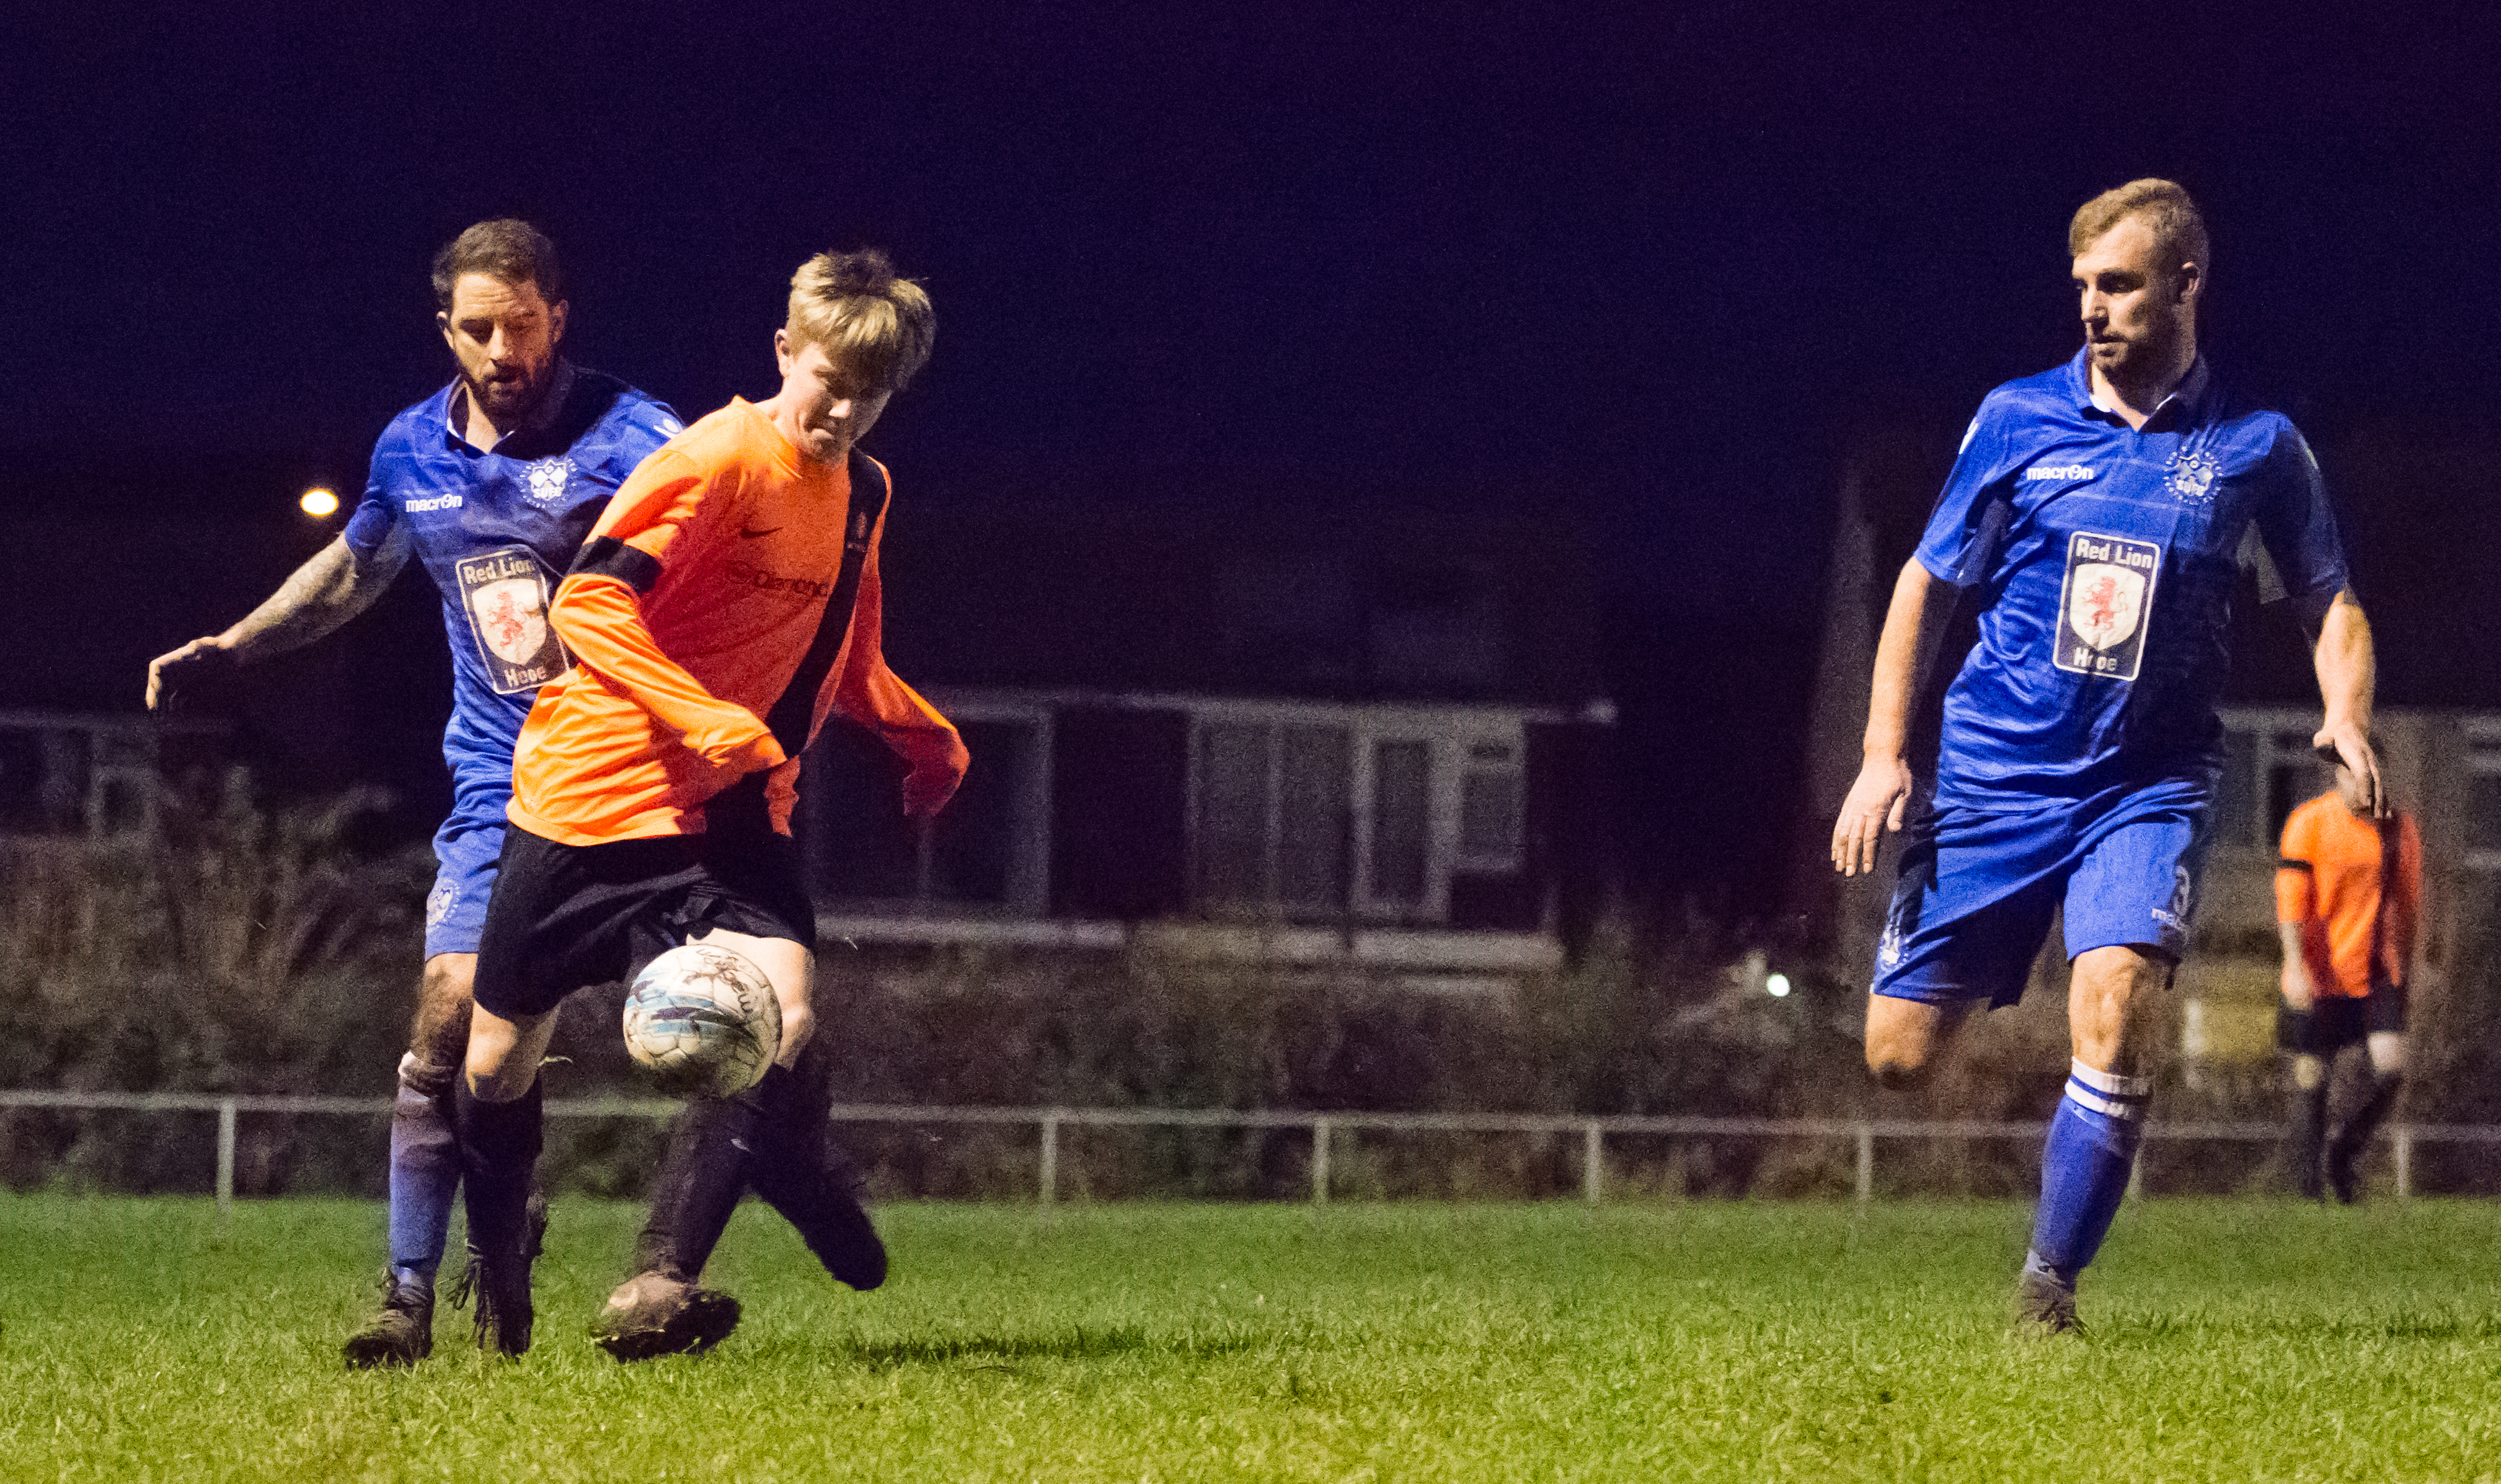 Mile Oak Res vs Sidley United 09.12.17 56